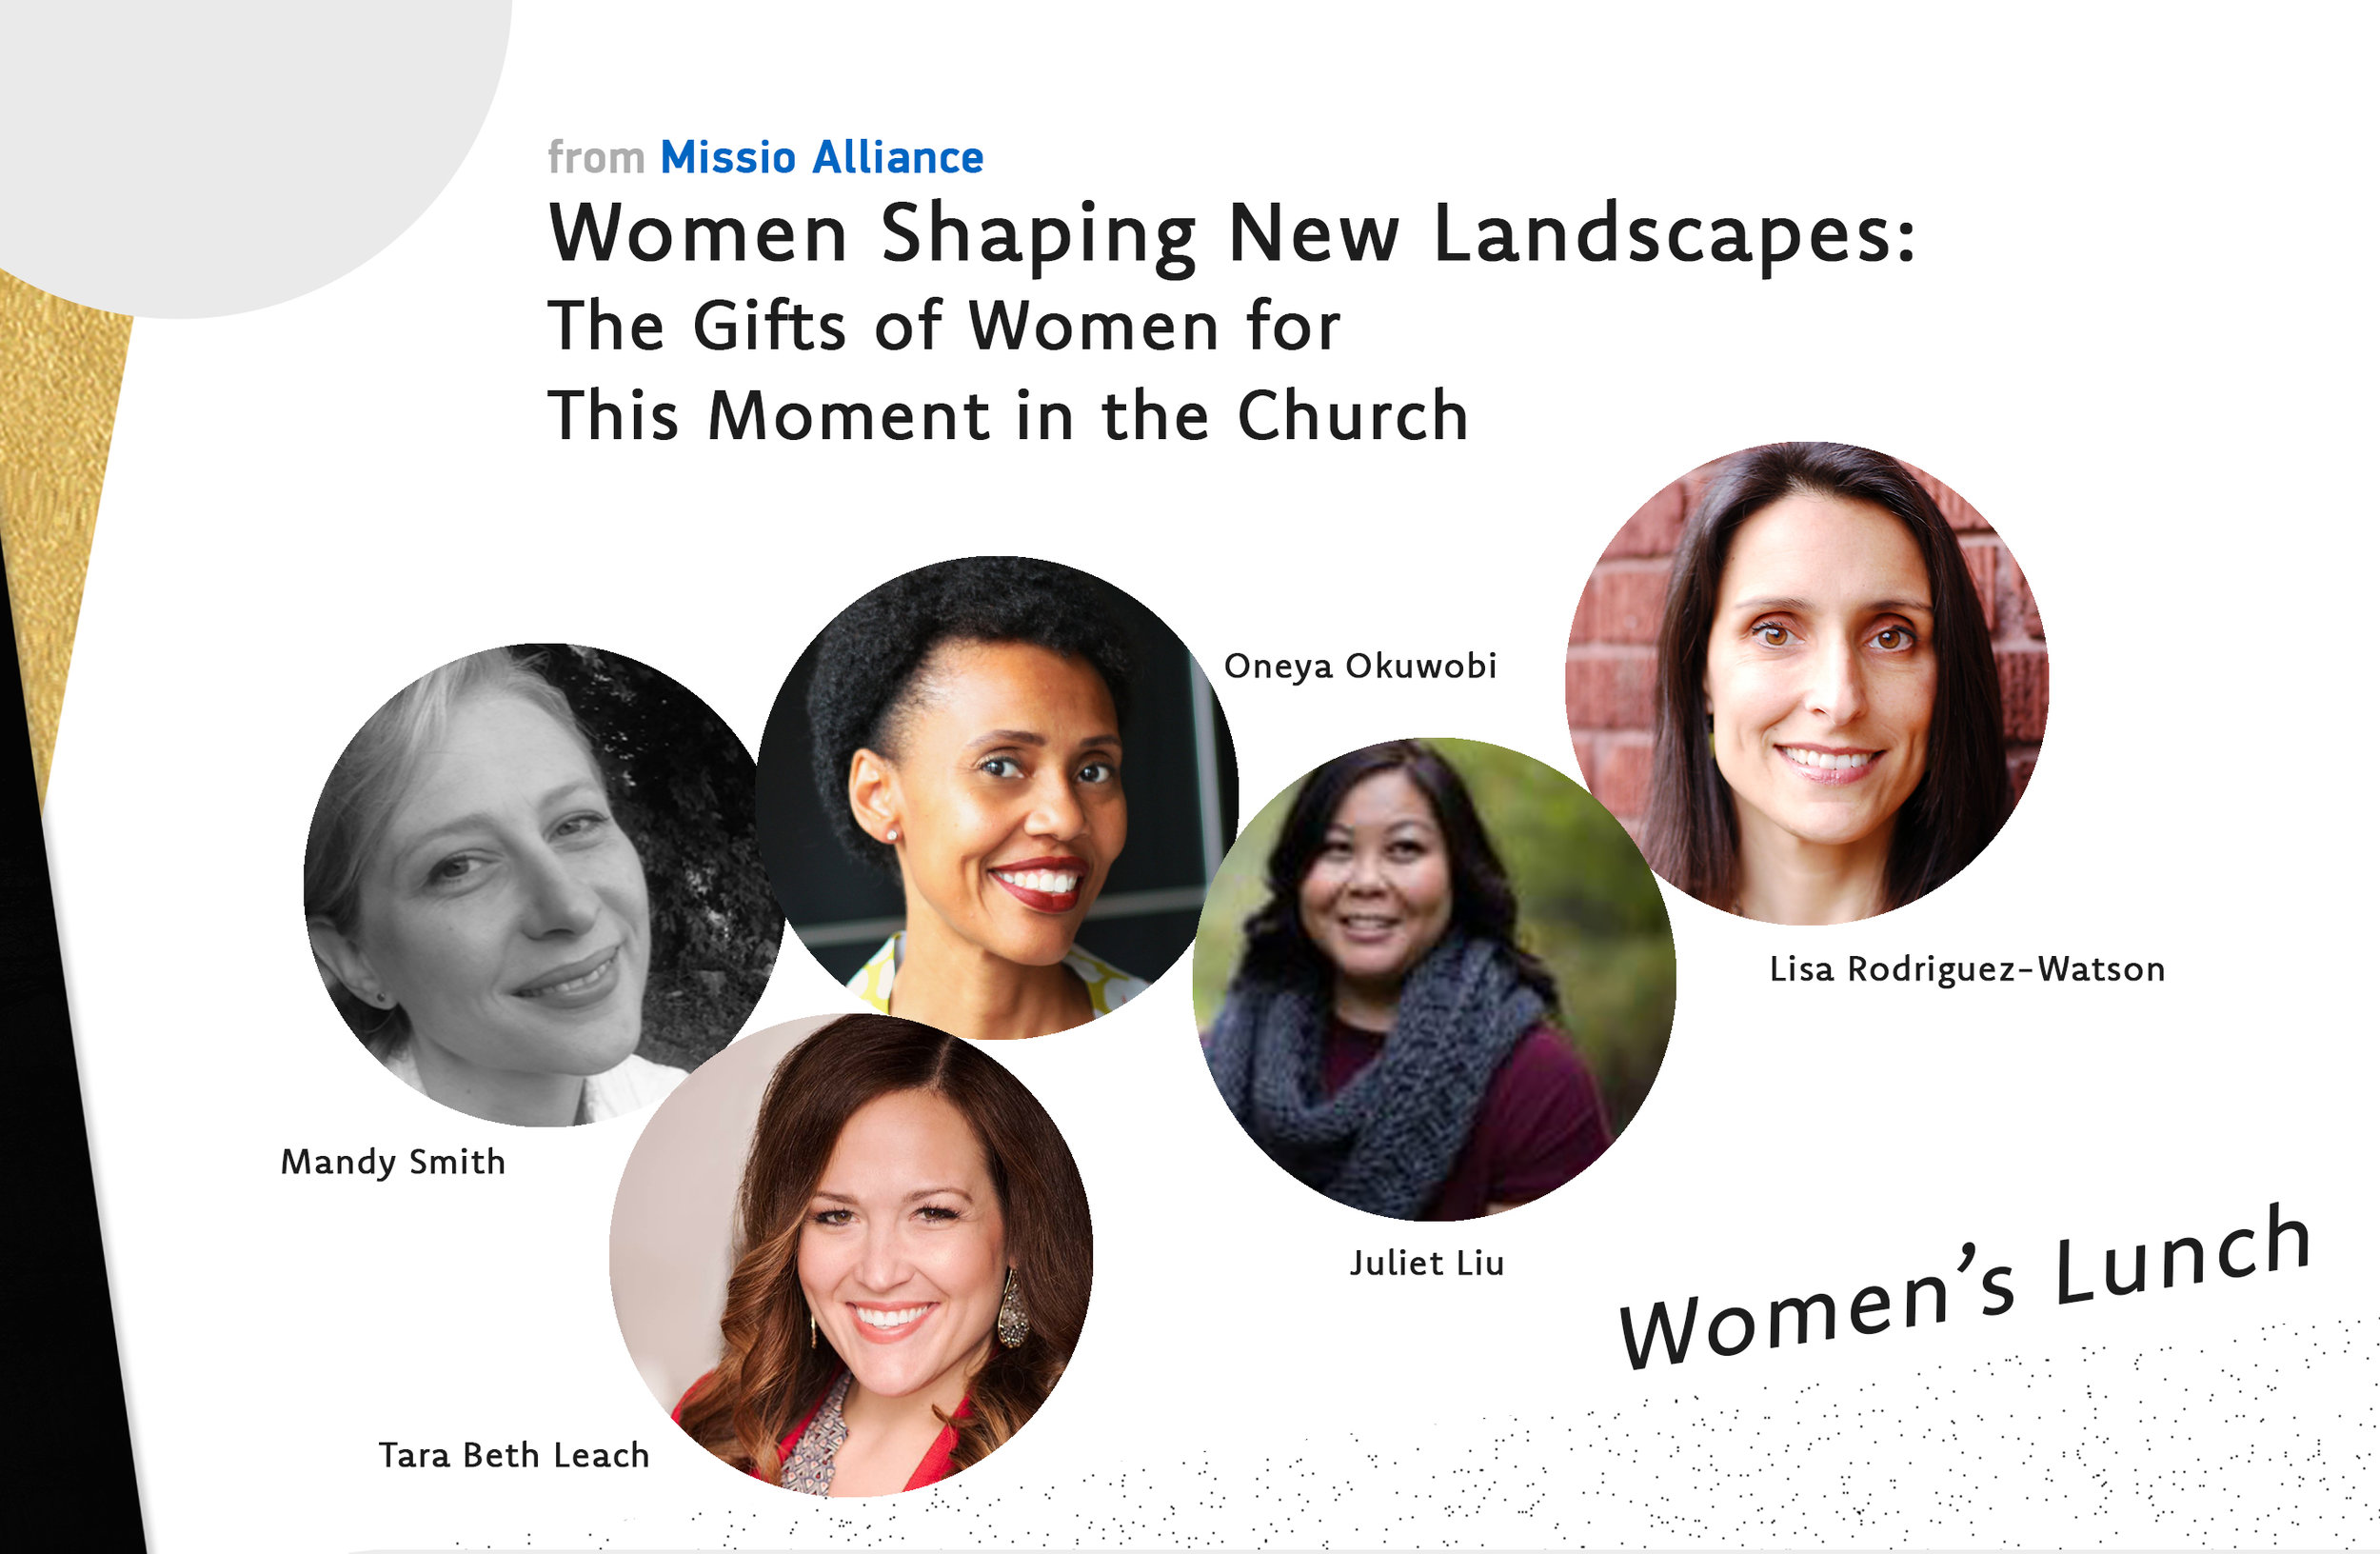 """Women's lunch: Friday, march 29 at 12:30pm - """"We are volcanoes. When we women offer our experience as our truth, as human truth, all the maps change. There are new mountains."""" -Ursula LeGuinWhat if at this moment God is providing the unique gifts of women to help the Church navigate this new terrain? What if even the challenges we, as women, face actually shape us into exactly the kinds of leaders the Church needs right now?Join Mandy Smith, Oneya Okuwobi, Tara Beth Leach, Lisa Rodriguez Watson and Juiet Liu for this lunch for women to dream together how God wants to use our gifts and even our pain to draw us into his vision for being the Church for the sake of the world!This will be 12:30-1:45 on Friday (March 29) in the Downtown Baptist Church (DBC) Fellowship Hall.Limited to the first 90 to register."""